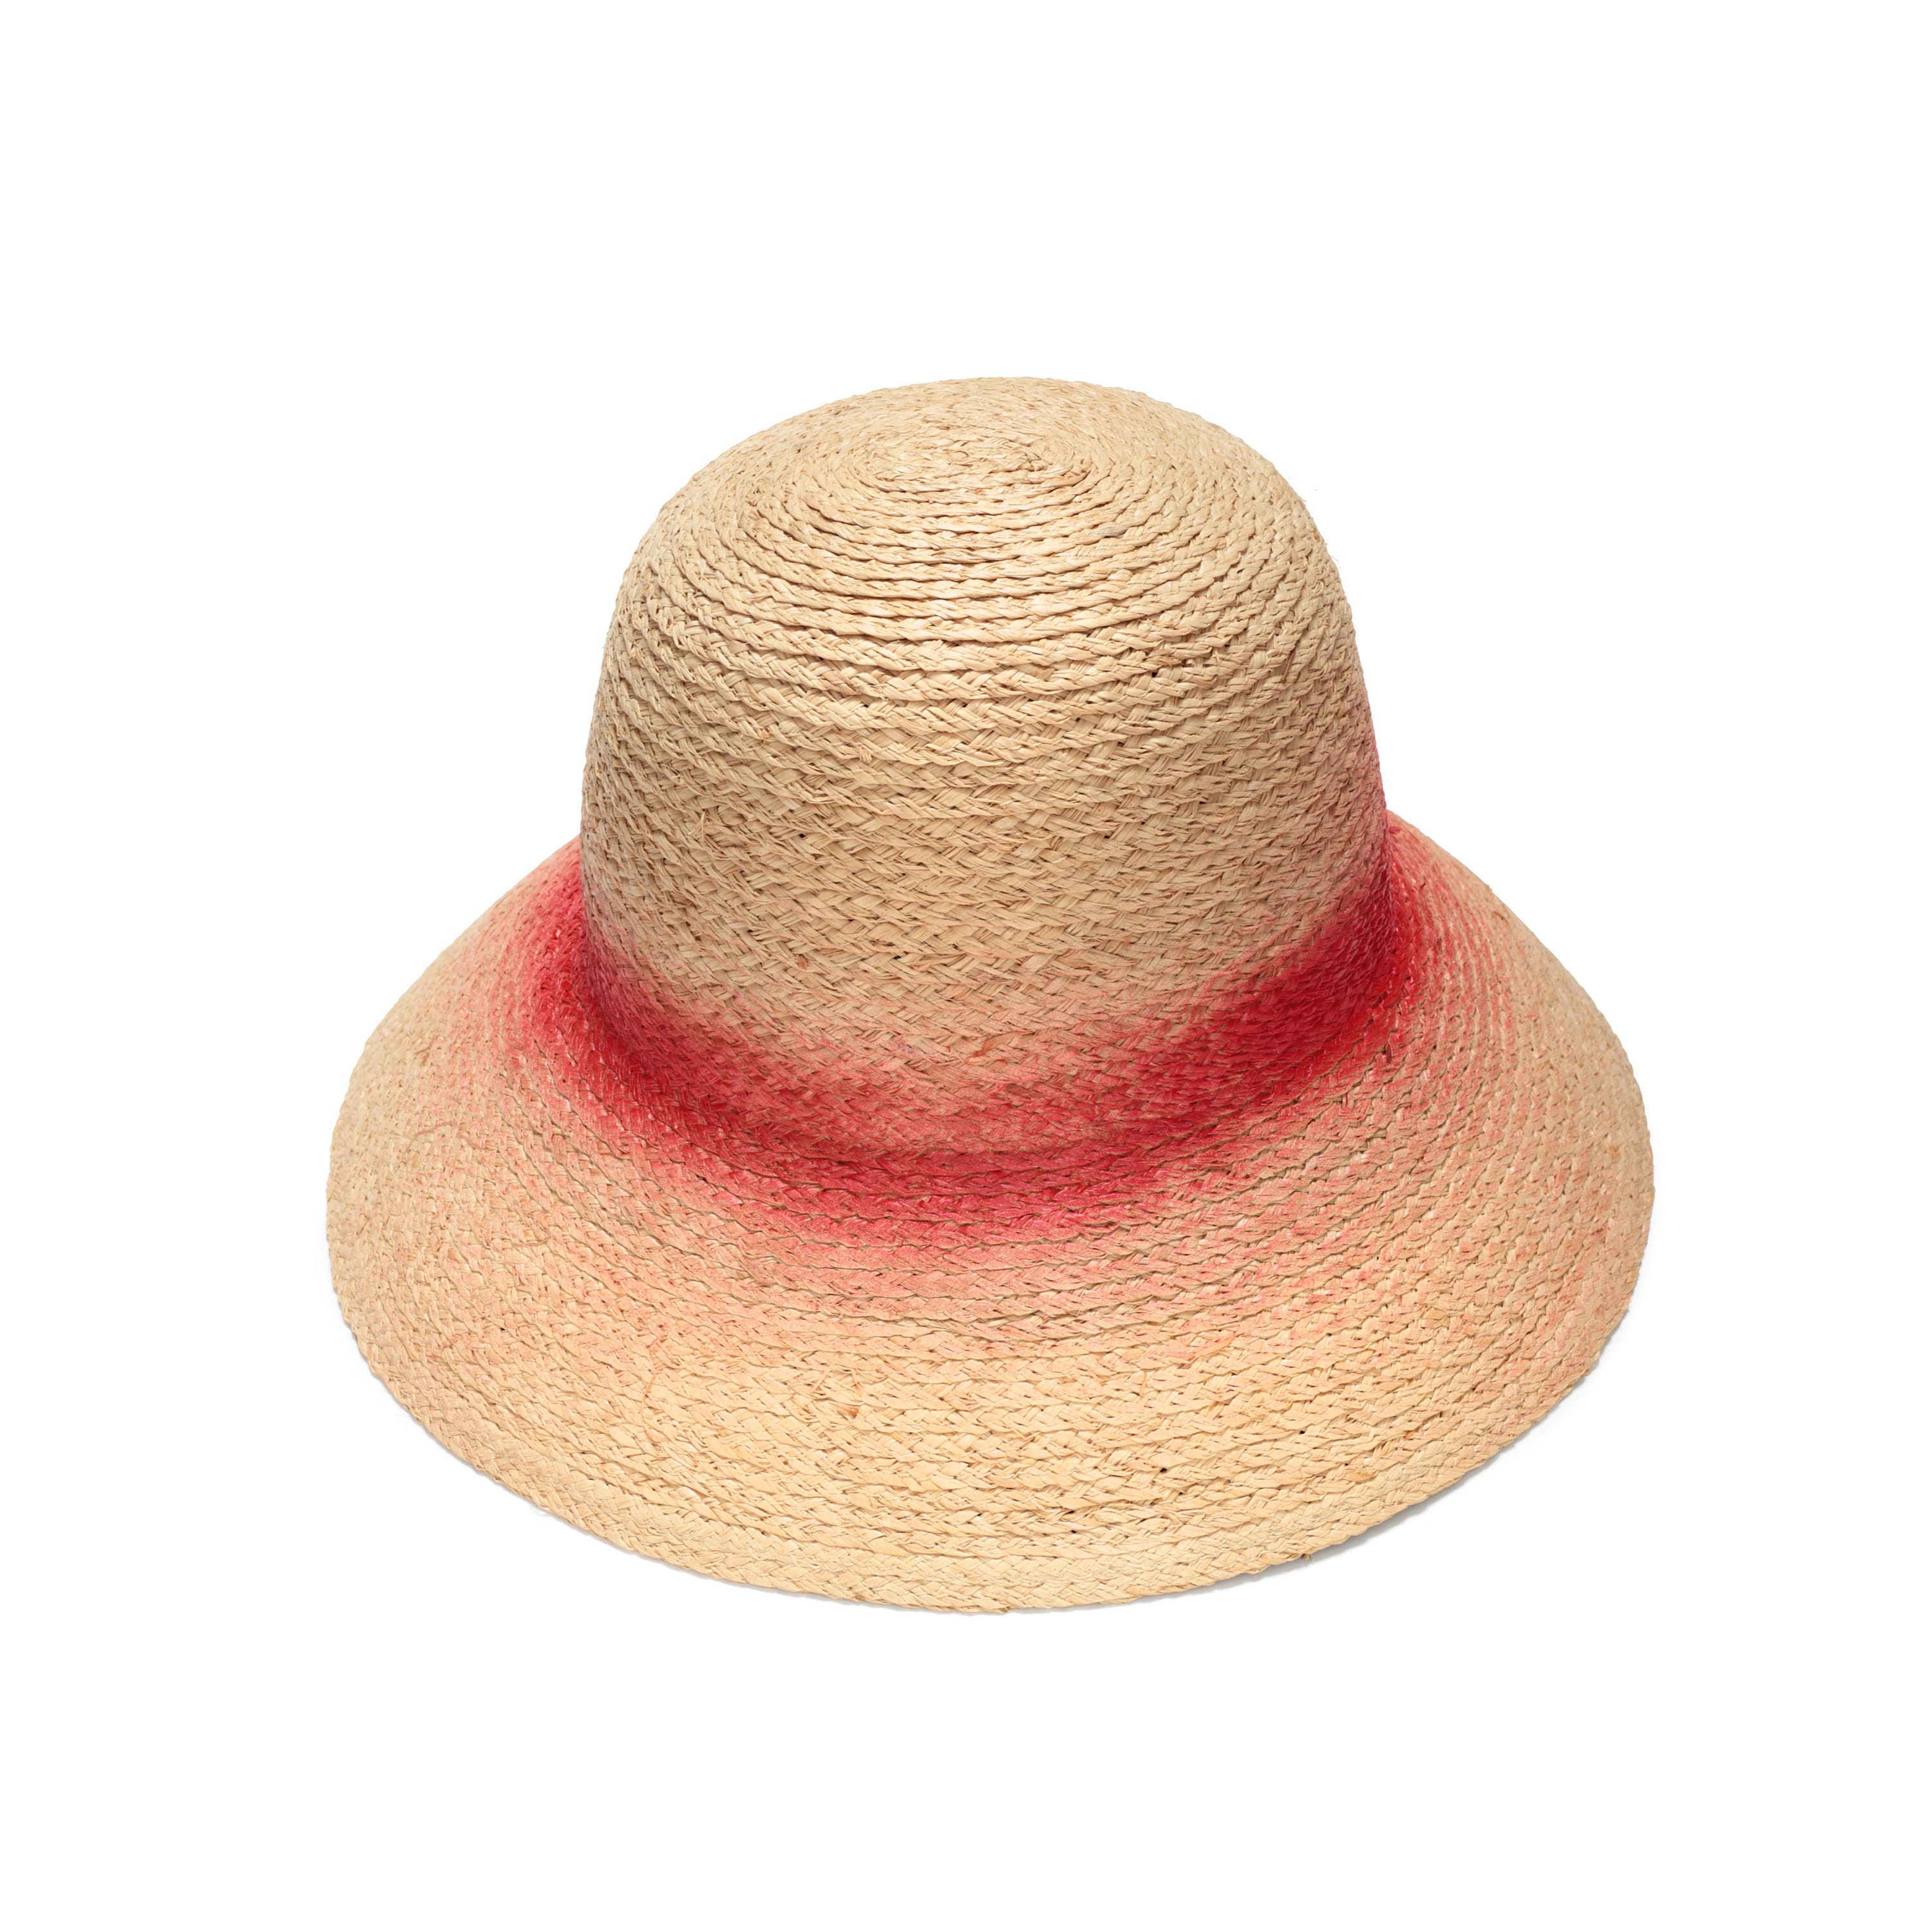 a9d5ed19a54a9 Straw cloche hat for women Classic cloche hat Summer cloche